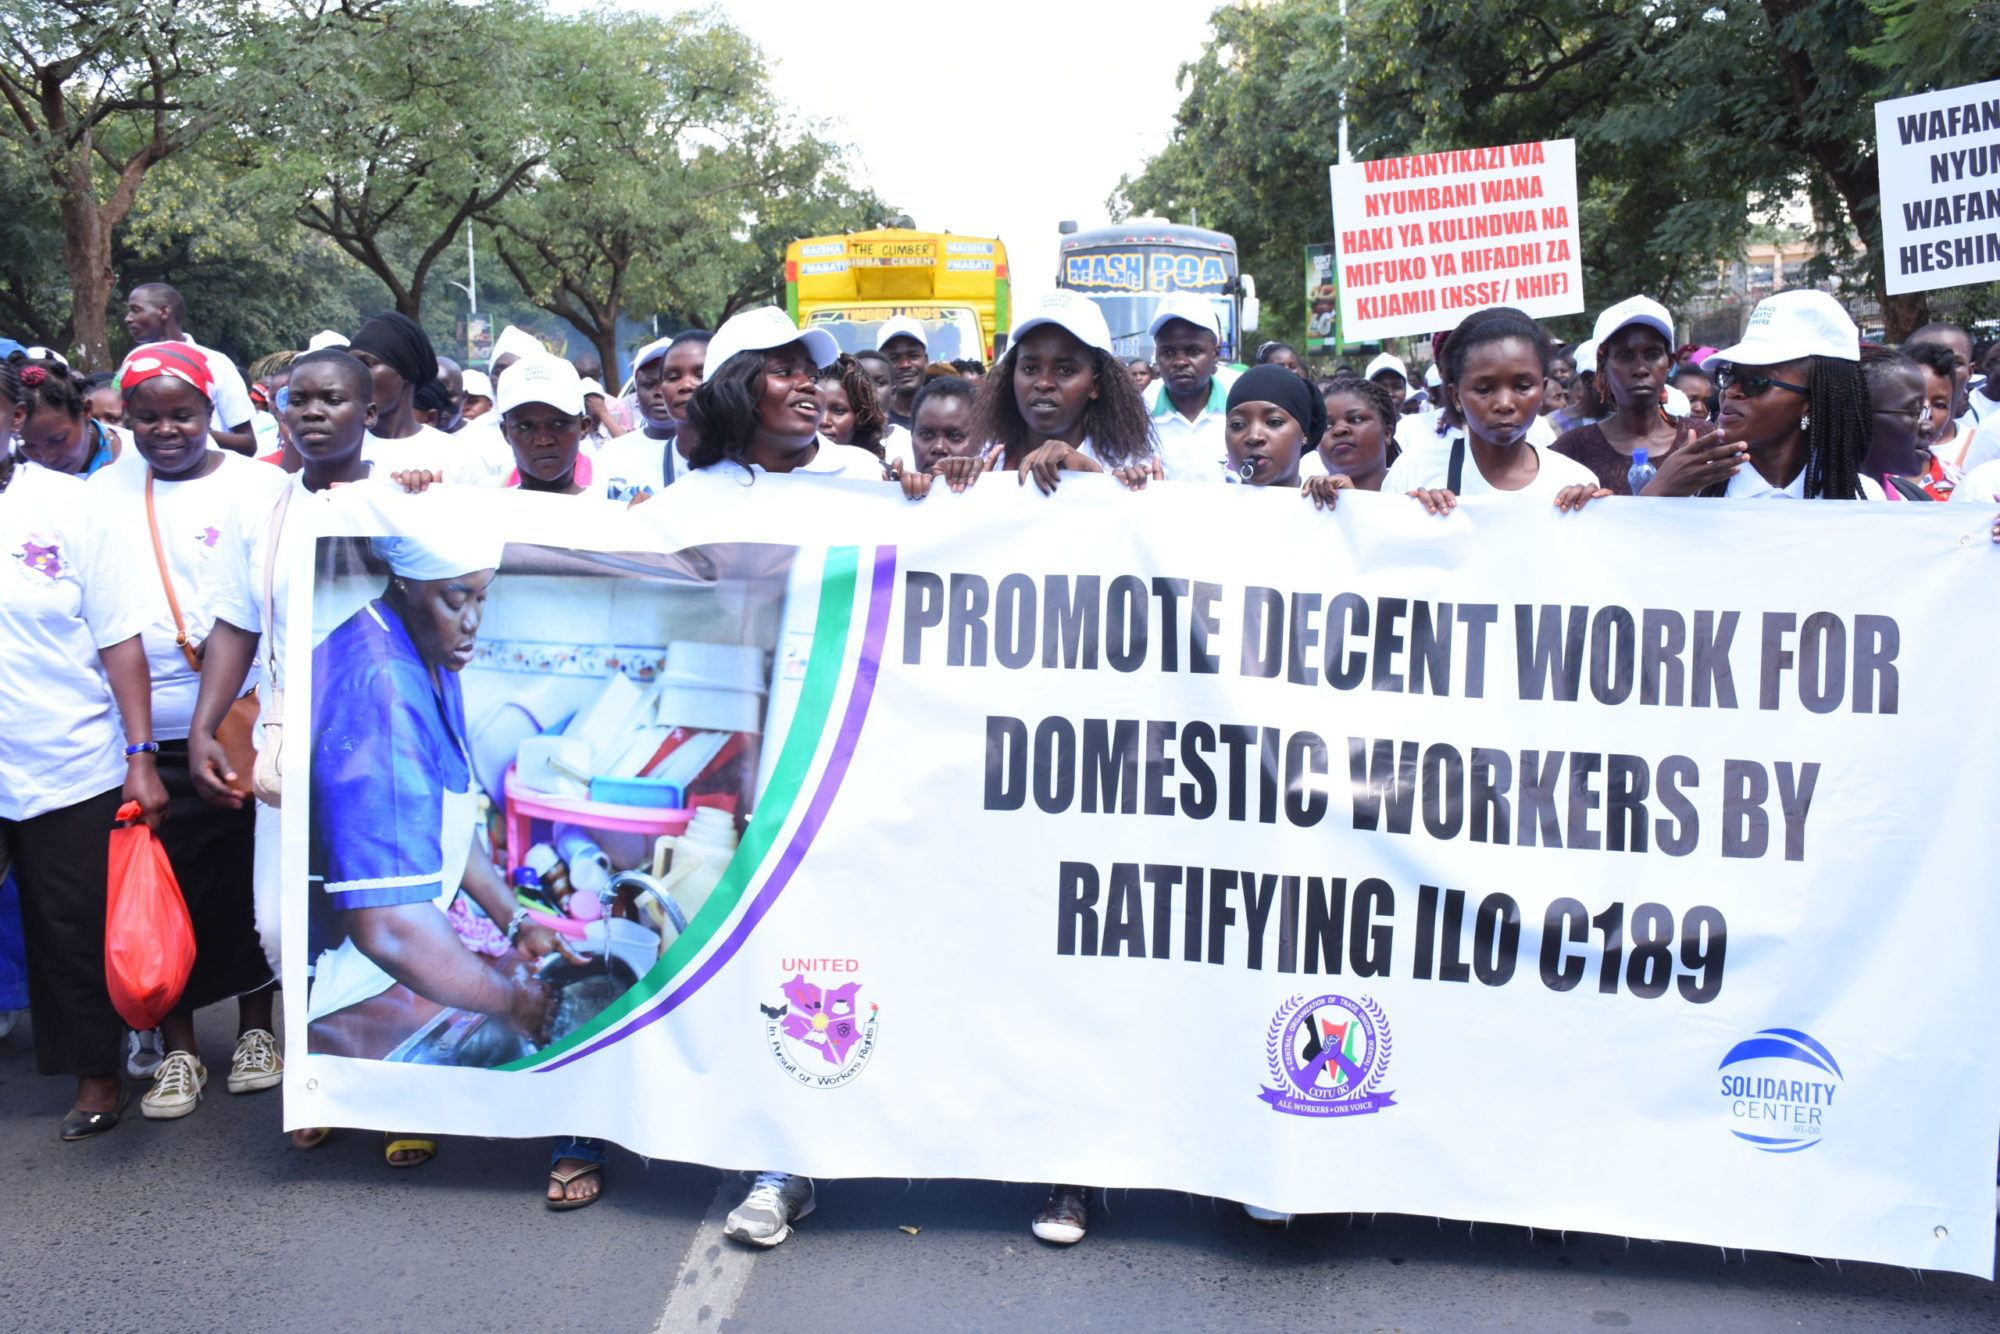 Kenya, domestic workers, ILO Convention 189, Solidarity Center